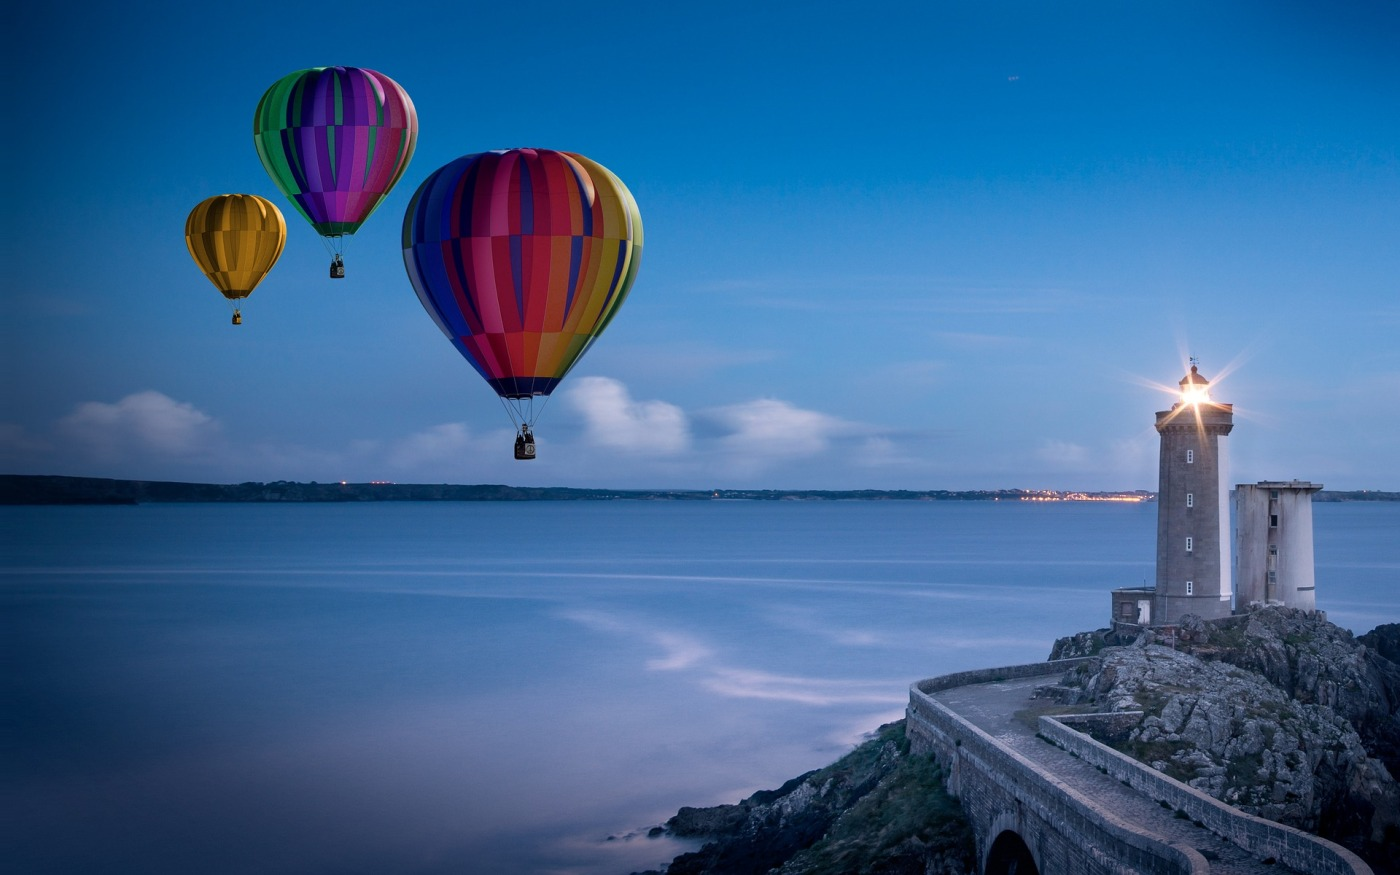 Balloons taking off from coastline. A symbol of breaking free.